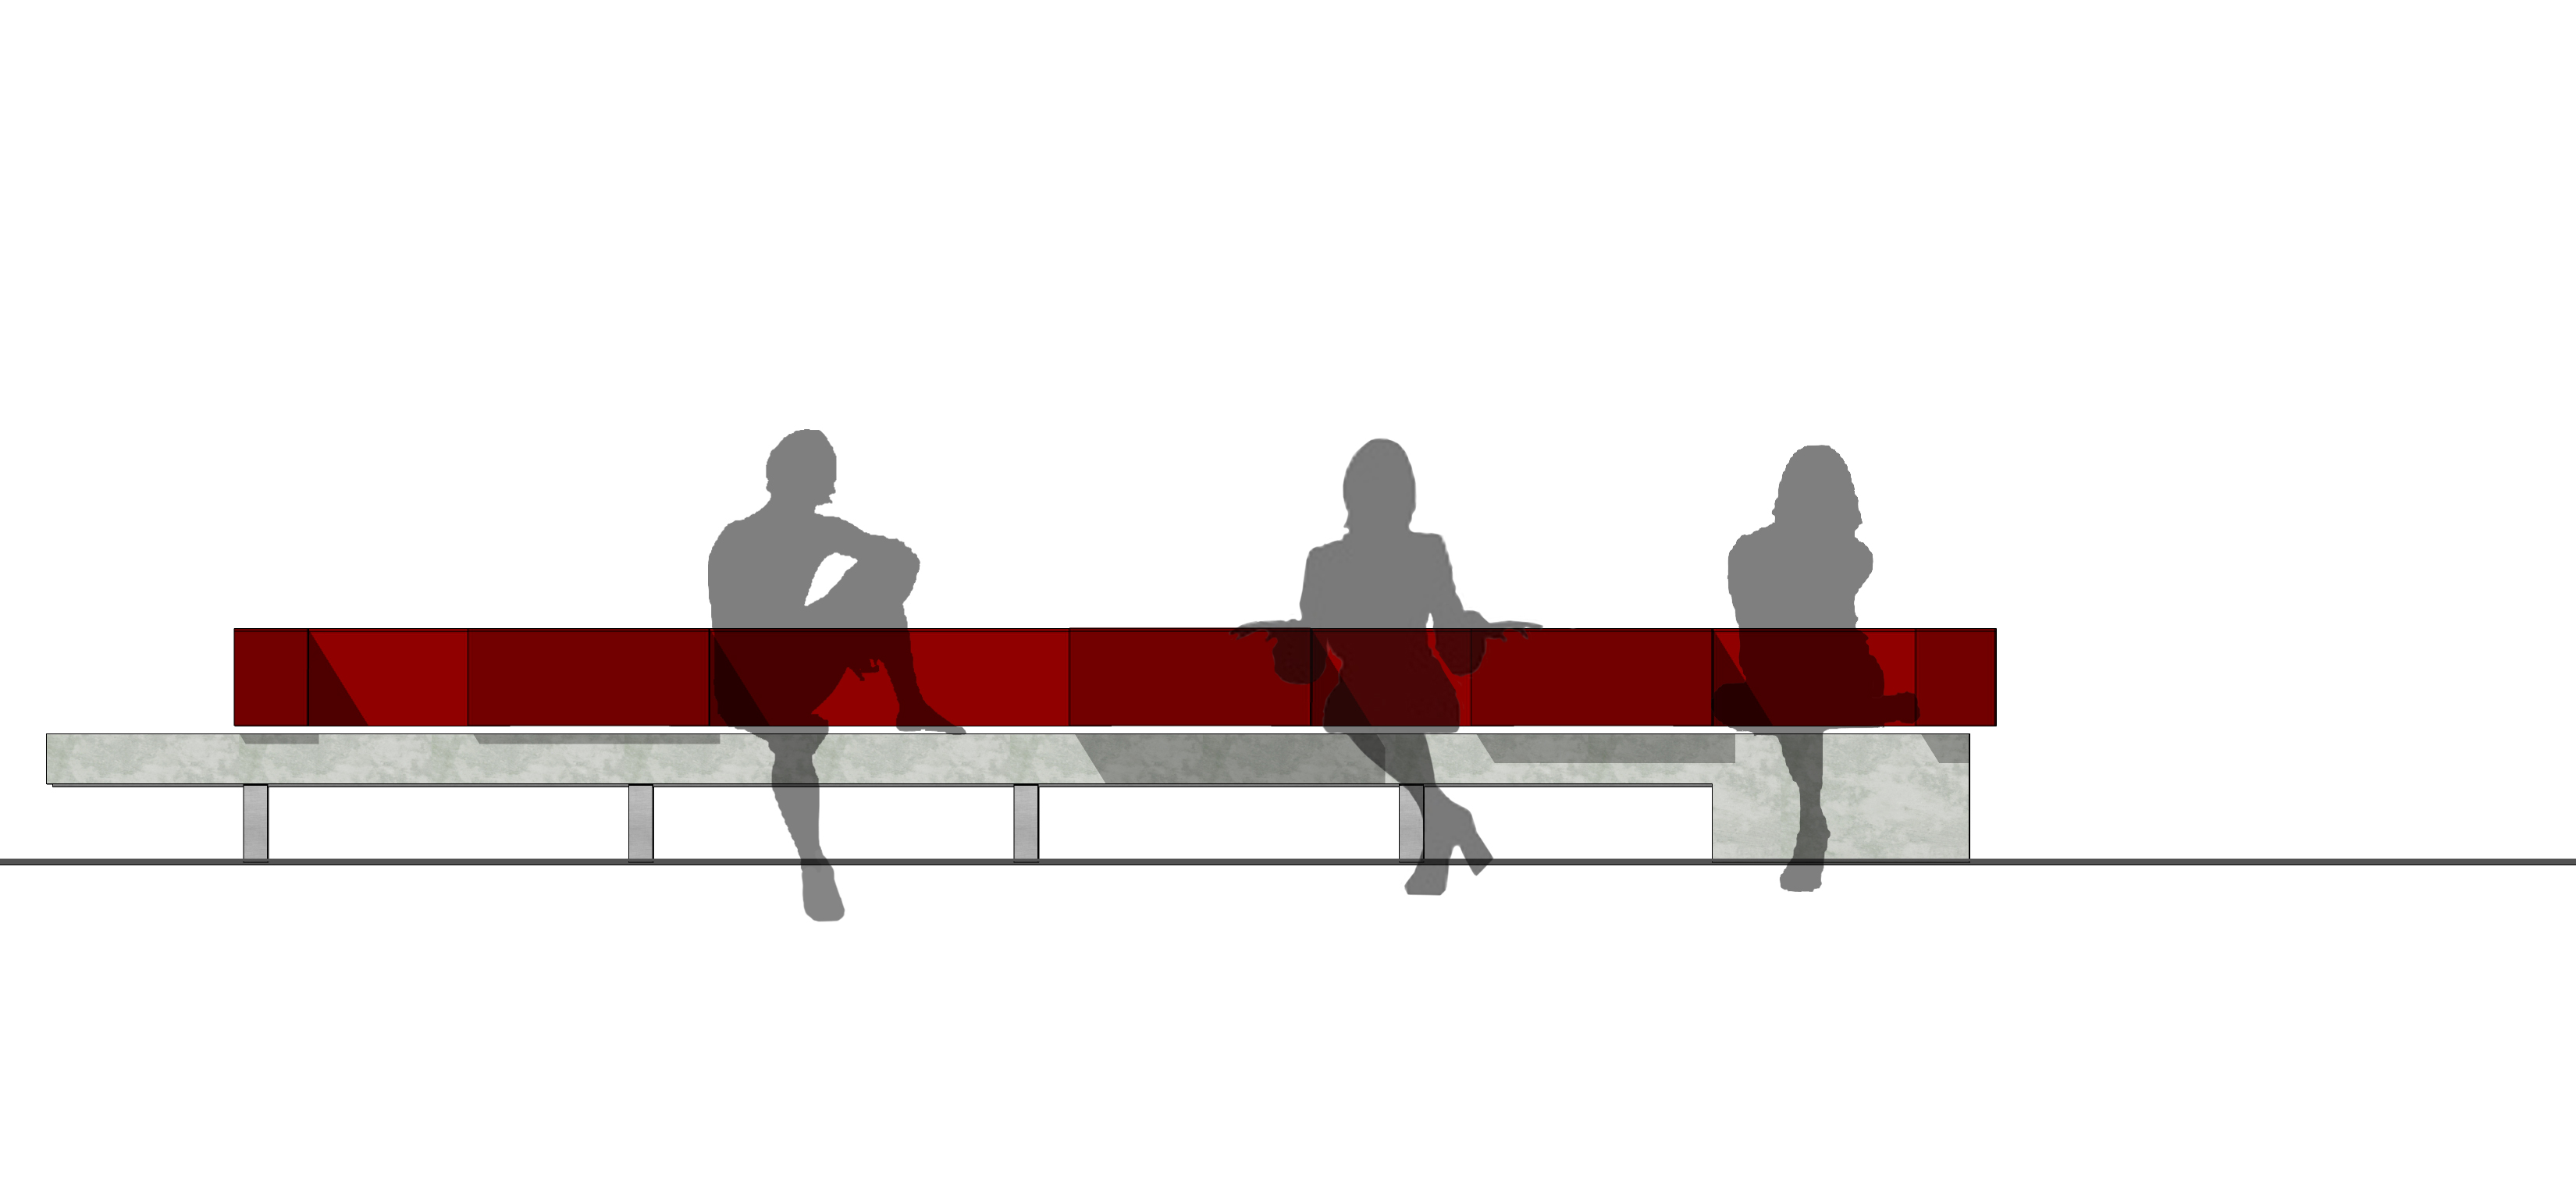 Unit 7 Architecture   Projects - The Bench Competition Entry